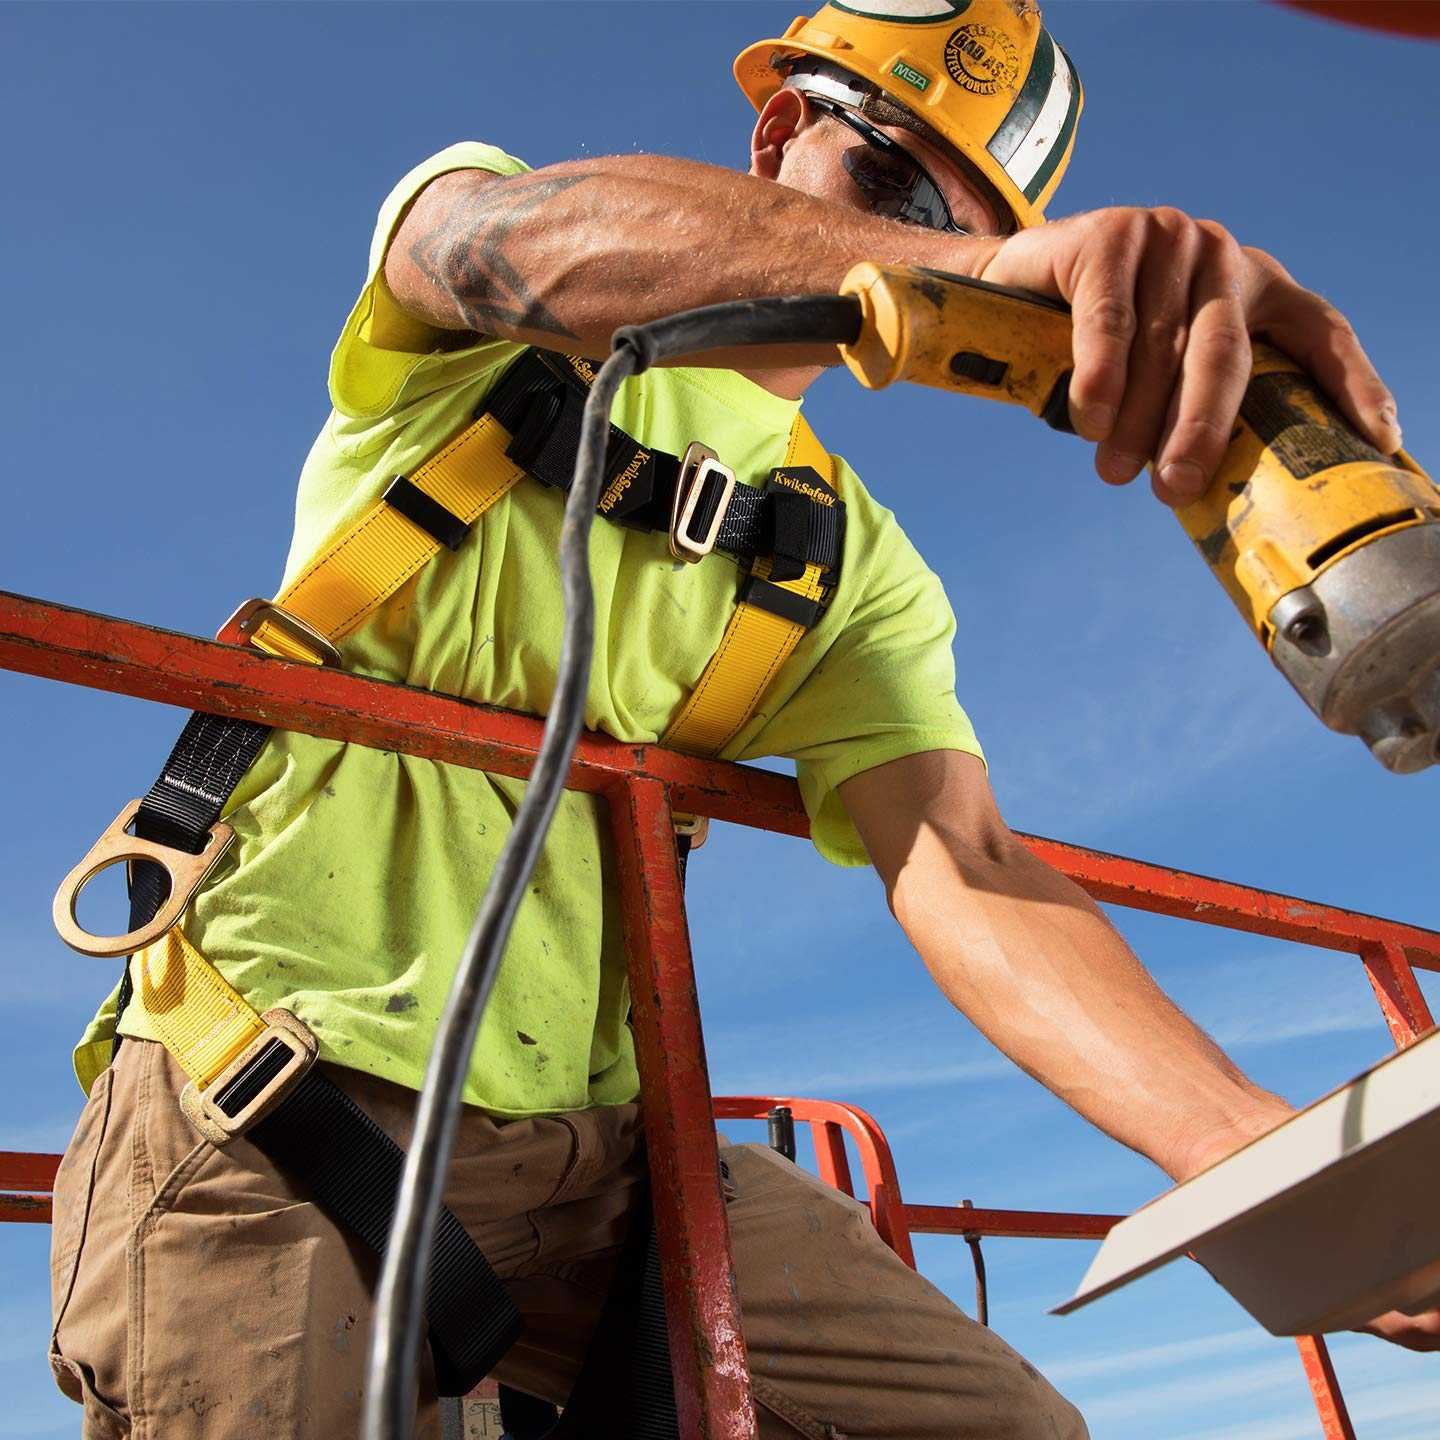 KwikSafety (Charlotte, NC) THUNDER KIT | 3D Full Body Safety Harness, 6' Lanyard, Tool Lanyard, 3' Cross Arm Strap Anchor ANSI OSHA PPE Fall Protection Arrest Restraint Construction Roofing Bucket by KwikSafety (Image #8)